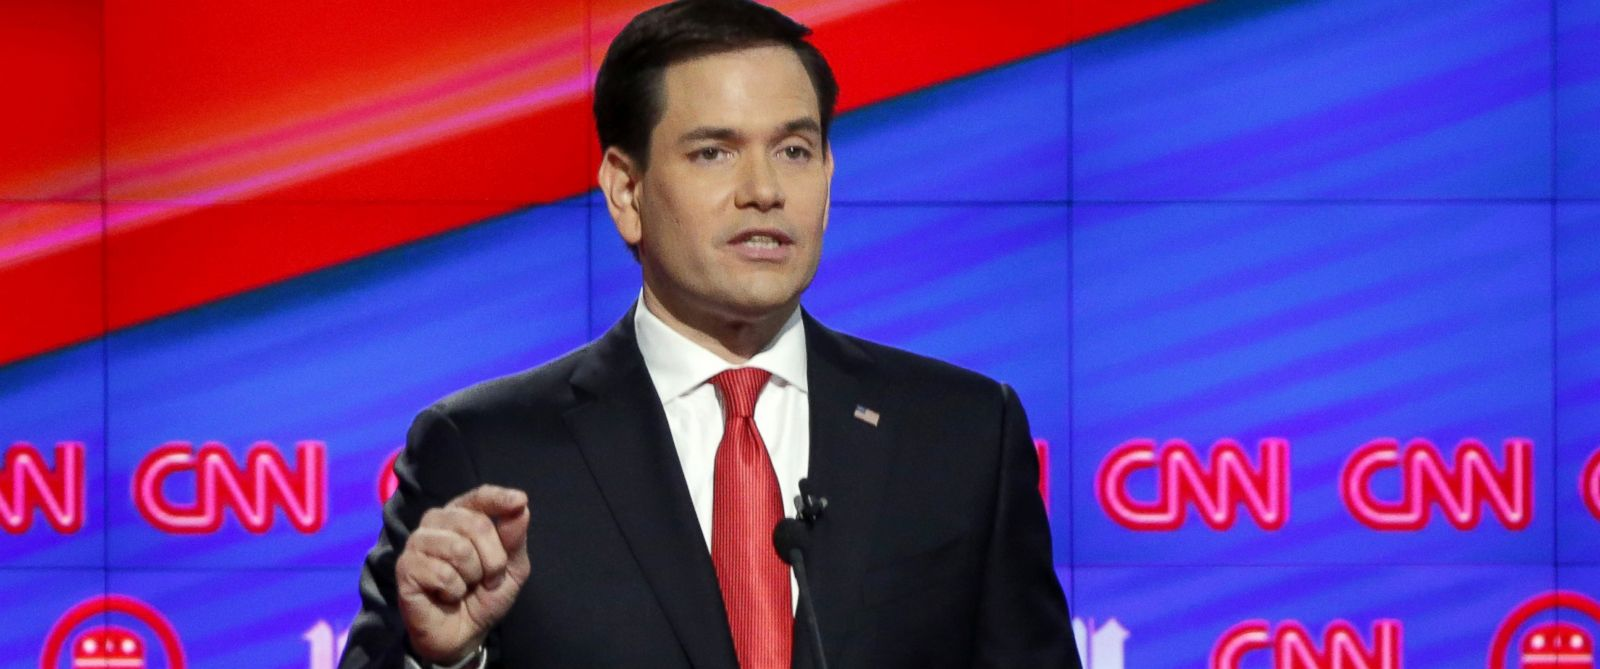 PHOTO: Republican presidential candidate Sen. Marco Rubio speaks during the Republican presidential debate sponsored by CNN, Salem Media Group and the Washington Times at the University of Miami, March 10, 2016, in Coral Gables, Fla.